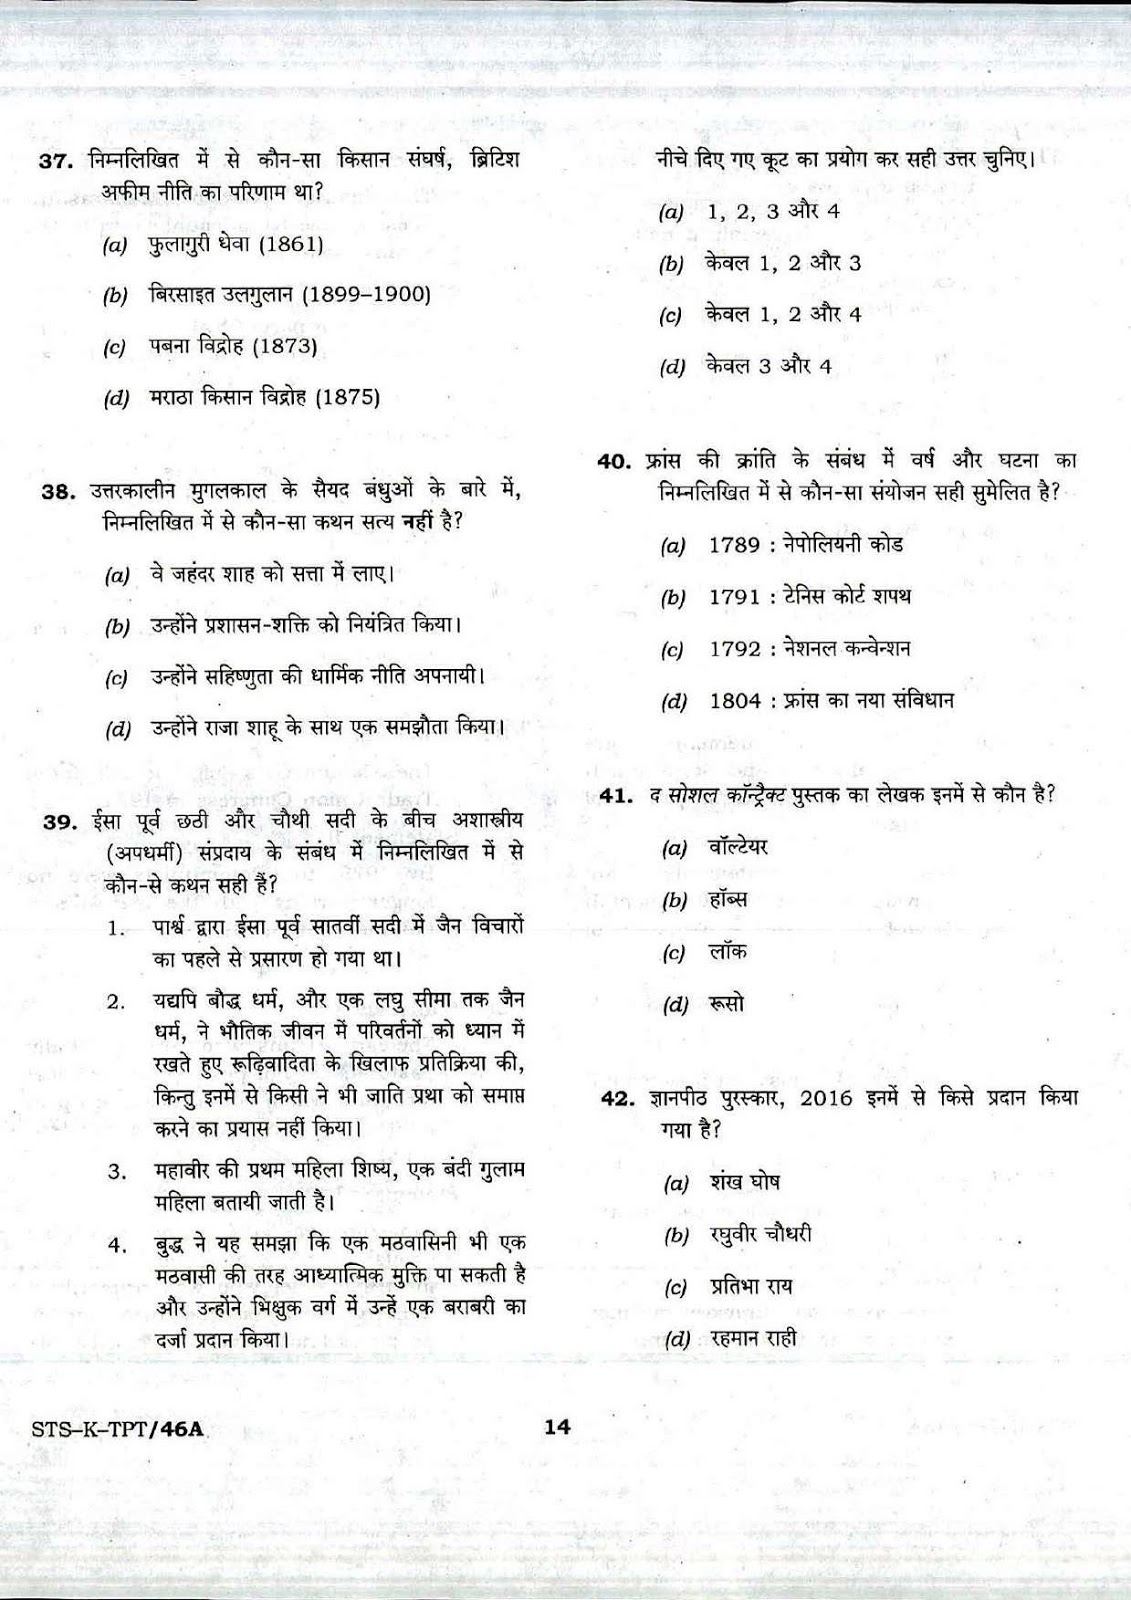 UPSC CDS II 2017 General Knowledge question paper